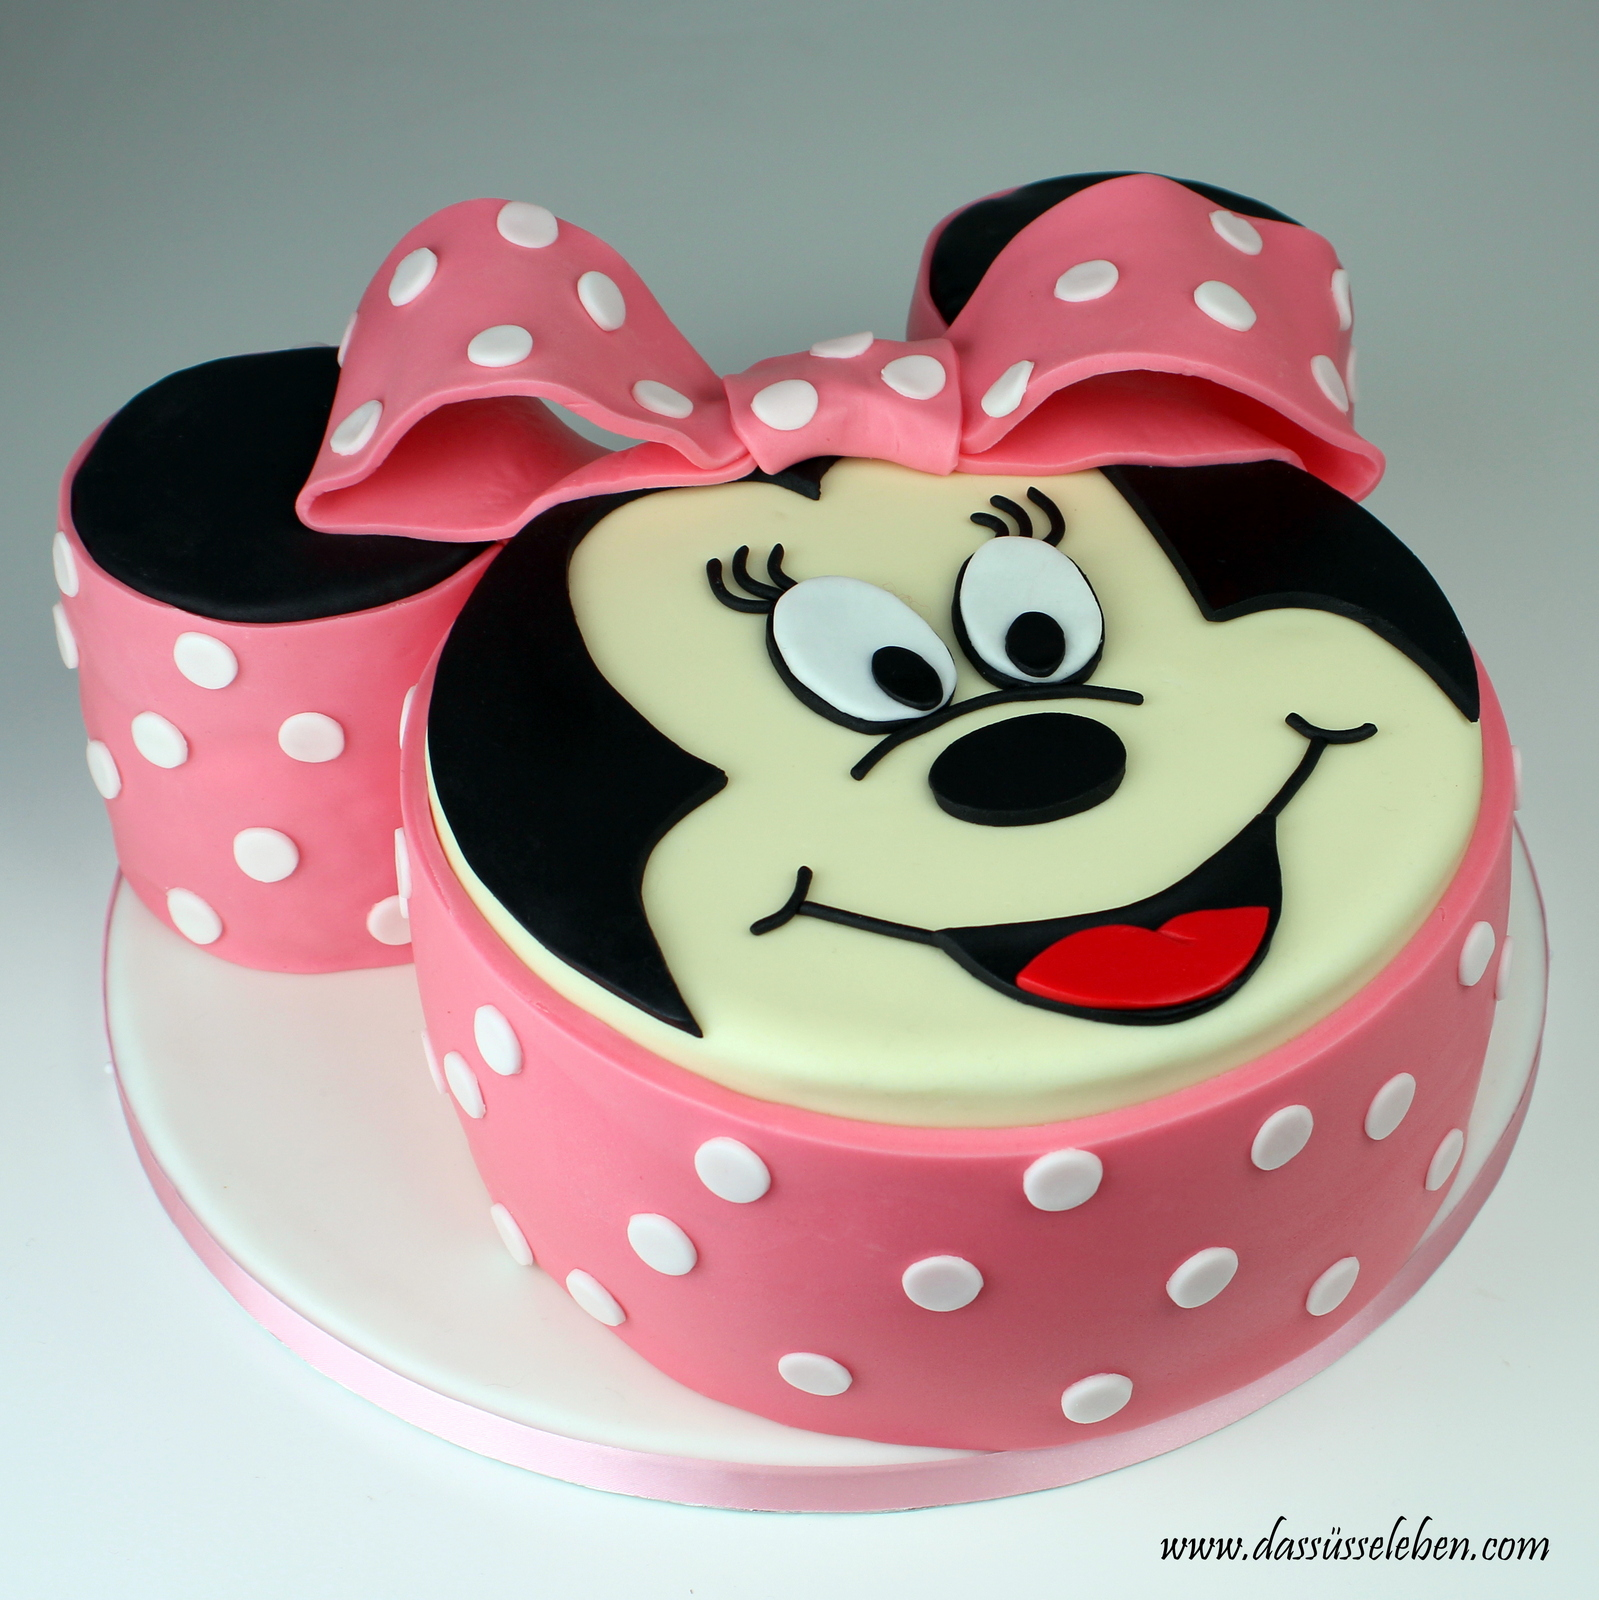 rezept minnie mouse torte das s e leben. Black Bedroom Furniture Sets. Home Design Ideas